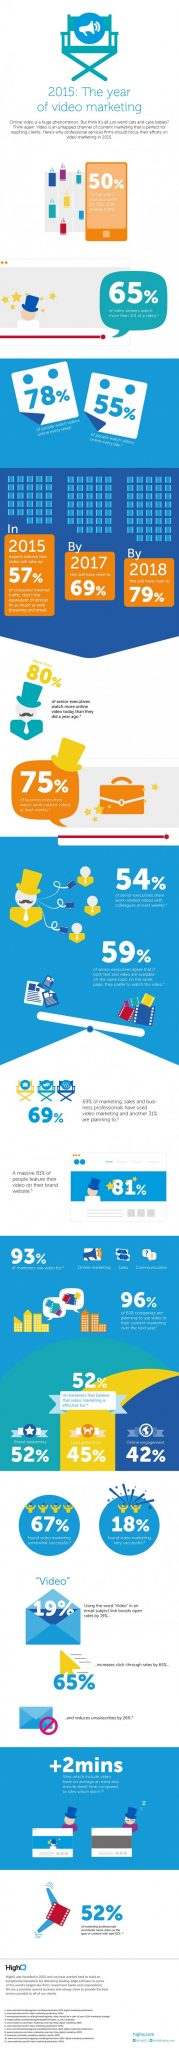 video-marketing-infographic-credit-HighQ-postedCuttingEdgeBlog-MHProNews-com